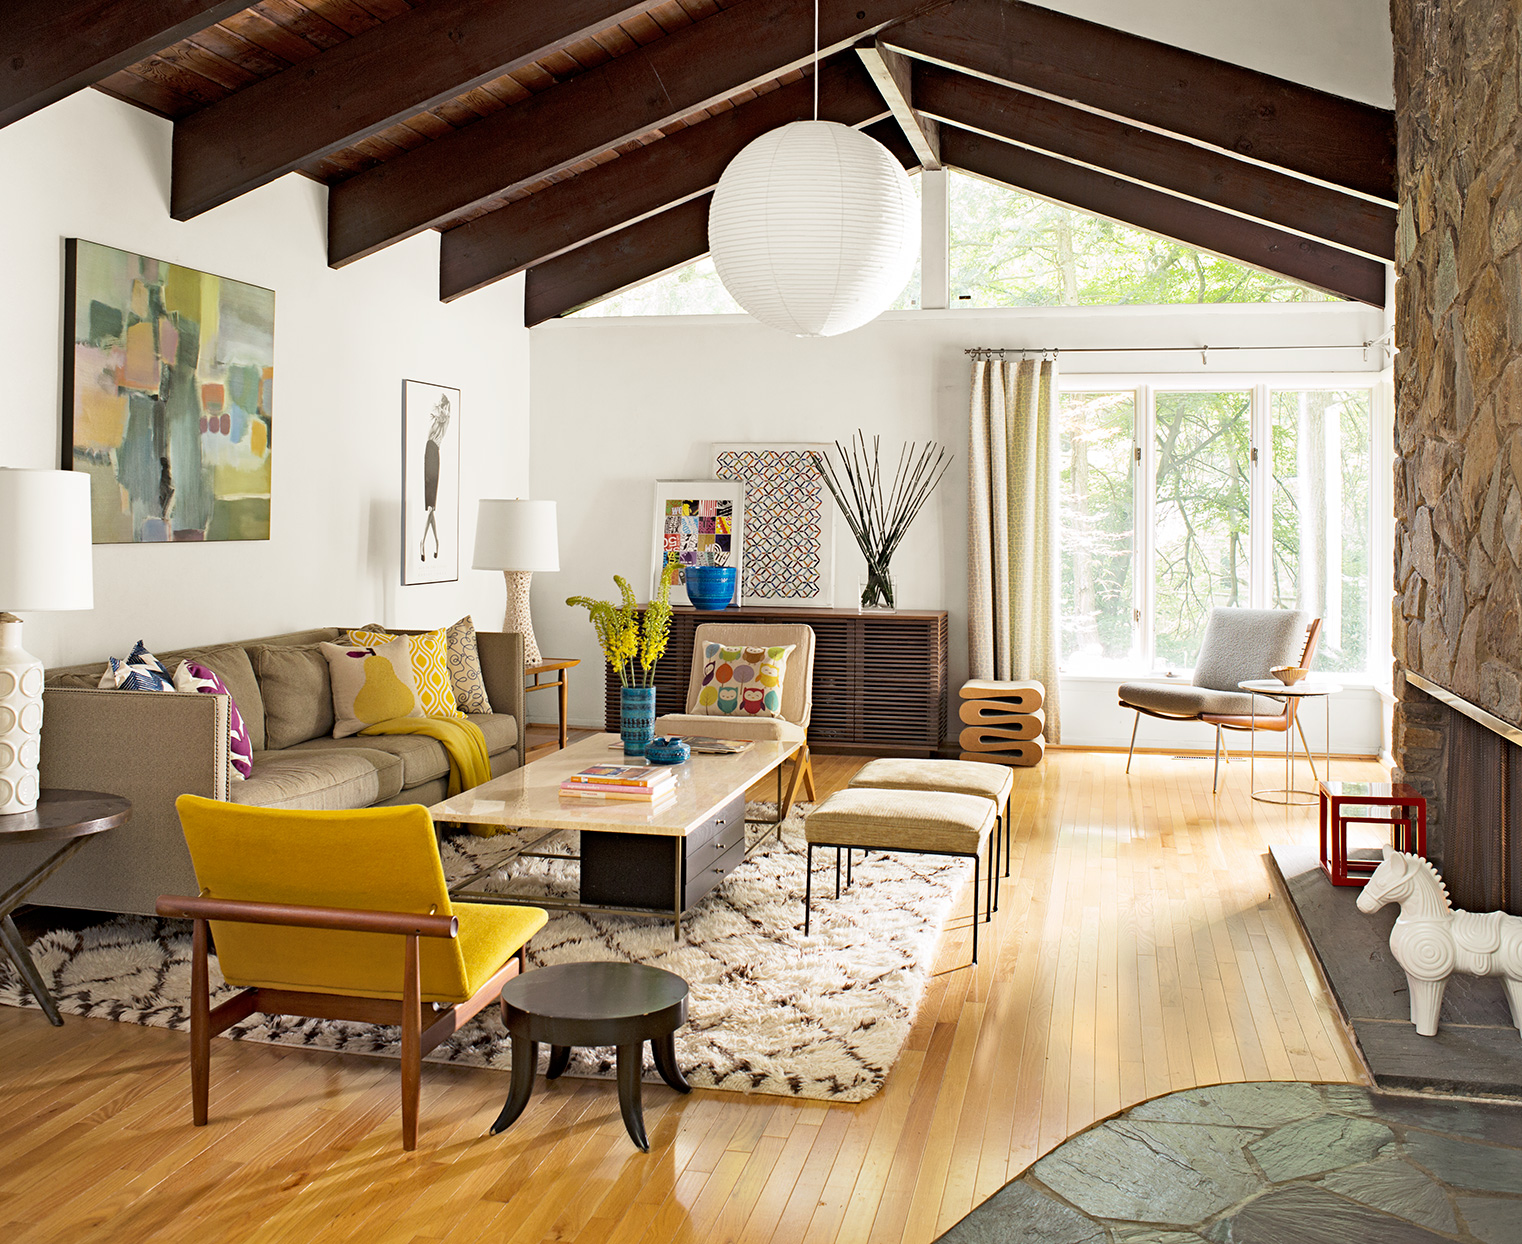 retro living room with wooden rafters